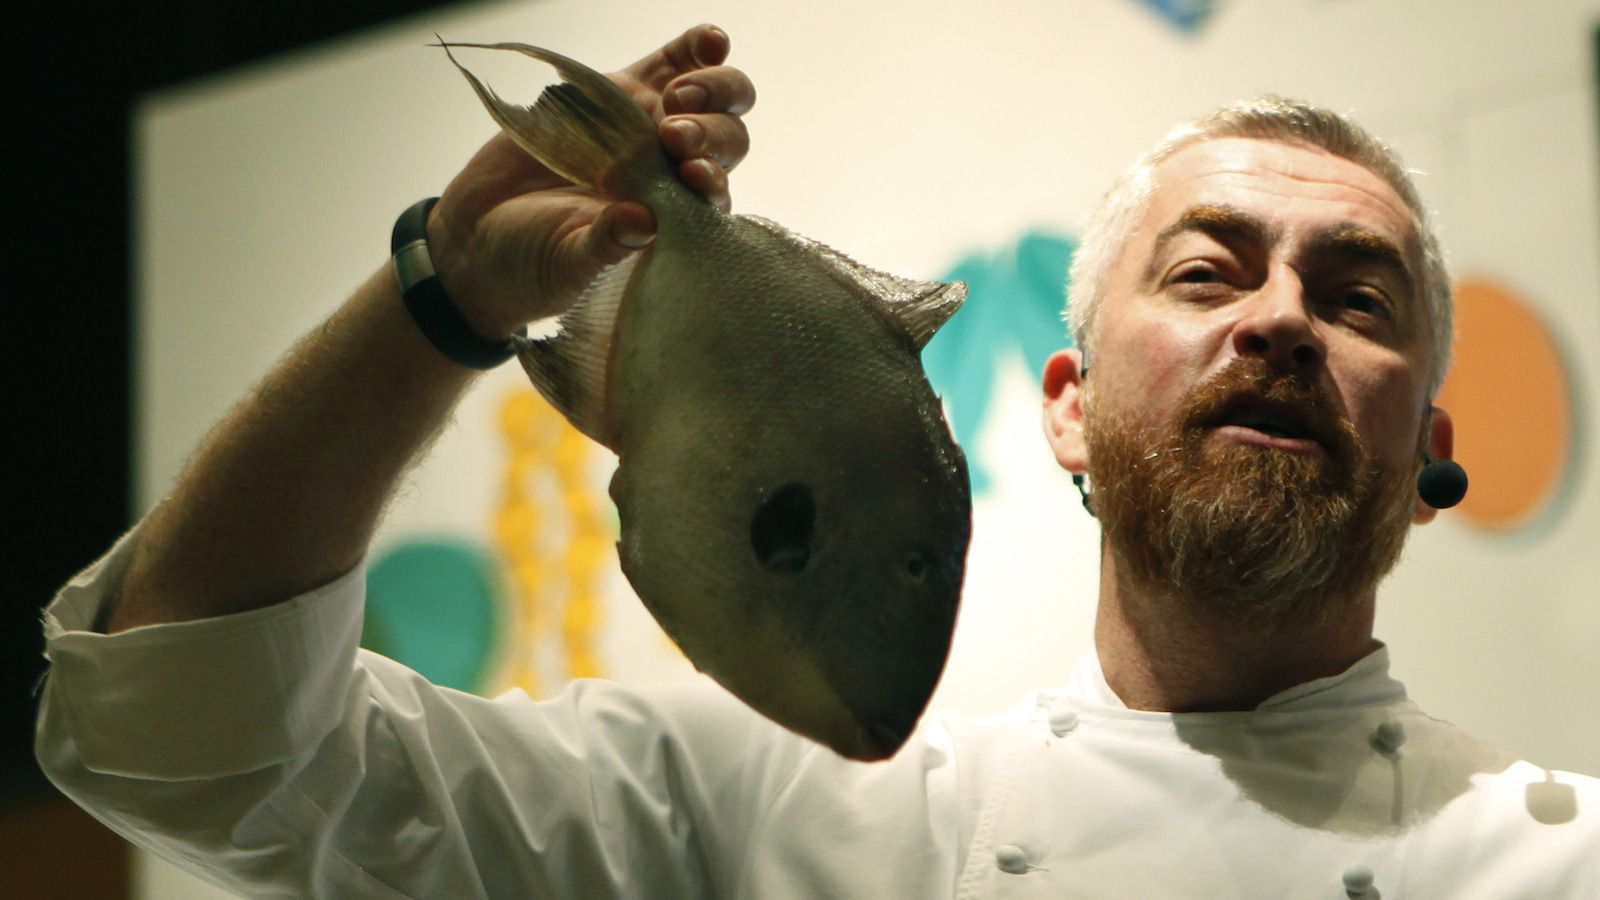 Brazilian chef Atala holds a fish while giving cooking lessons during the sixth Paladar Brazilian Kitchen event in Sao Paulo